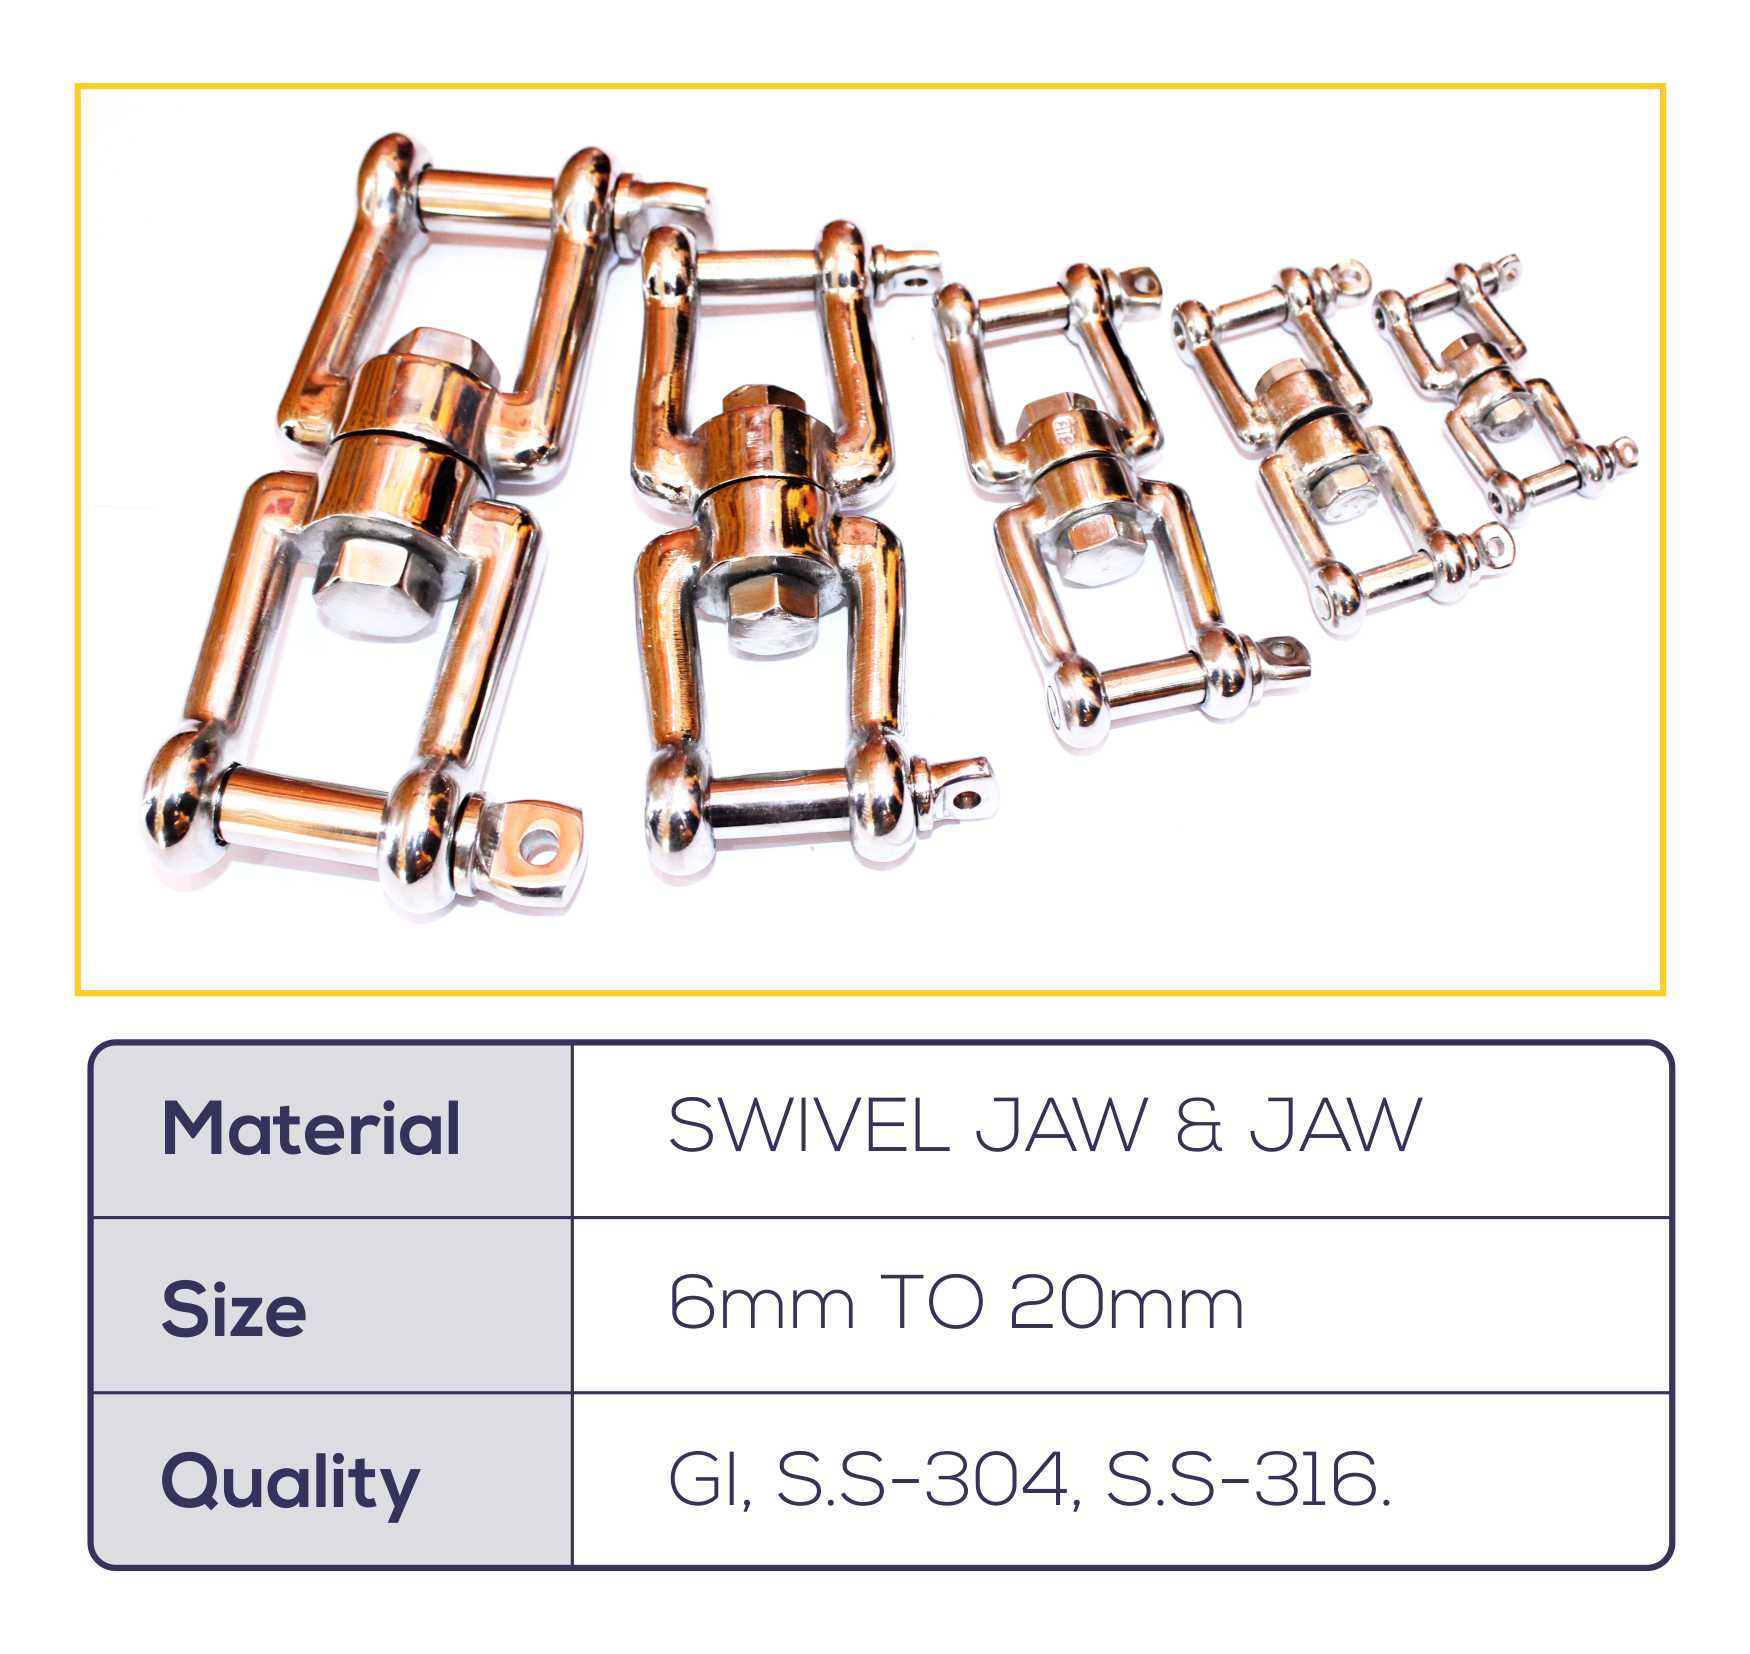 SWIVEL JAW & JAW